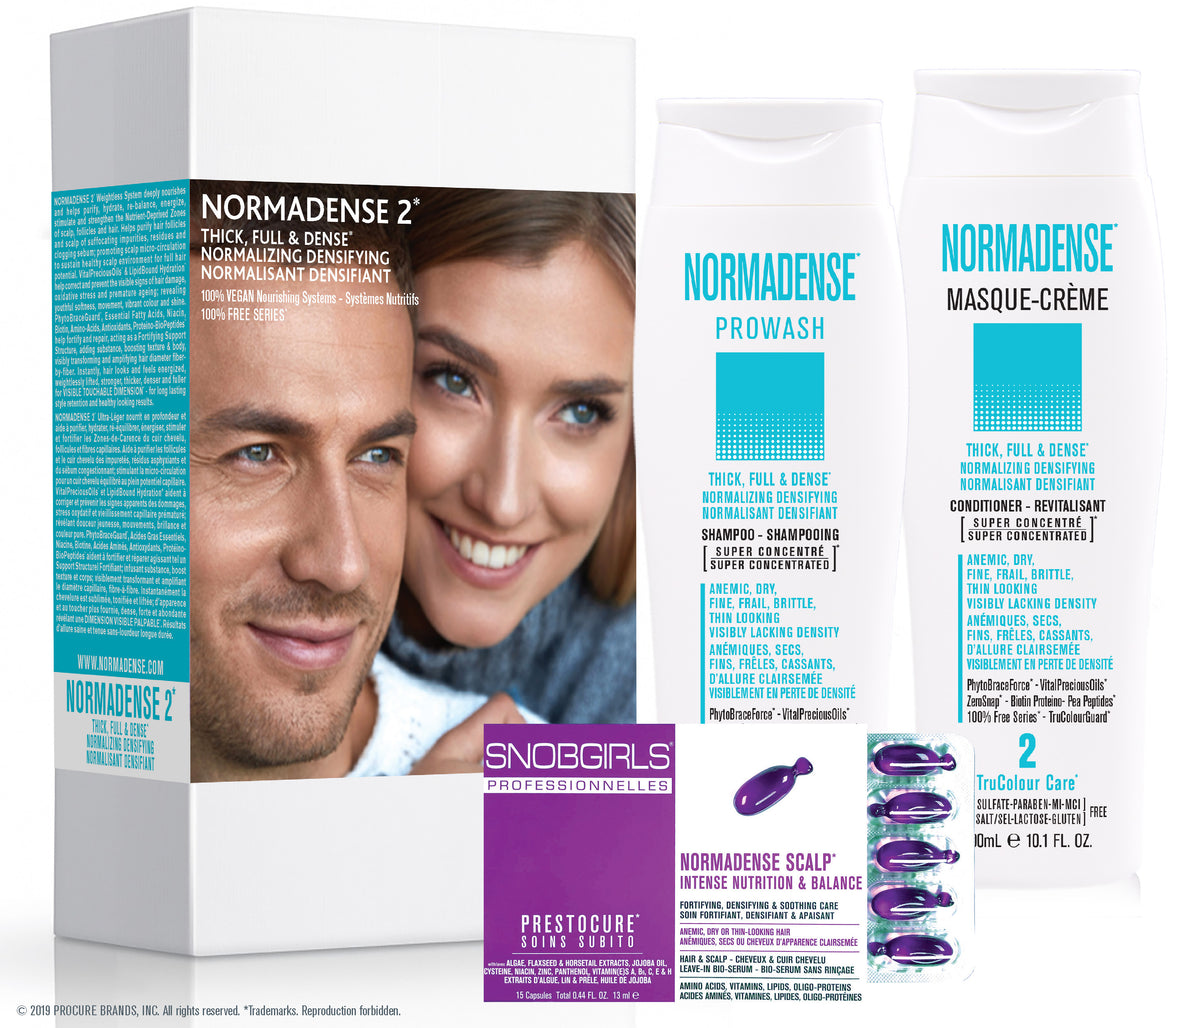 GIFT SETS- 6 X Trio NORMADENSE 2 Thick, Full & Dense Normalizing Densifying  + Duo Liters - SNOBGIRLS.com